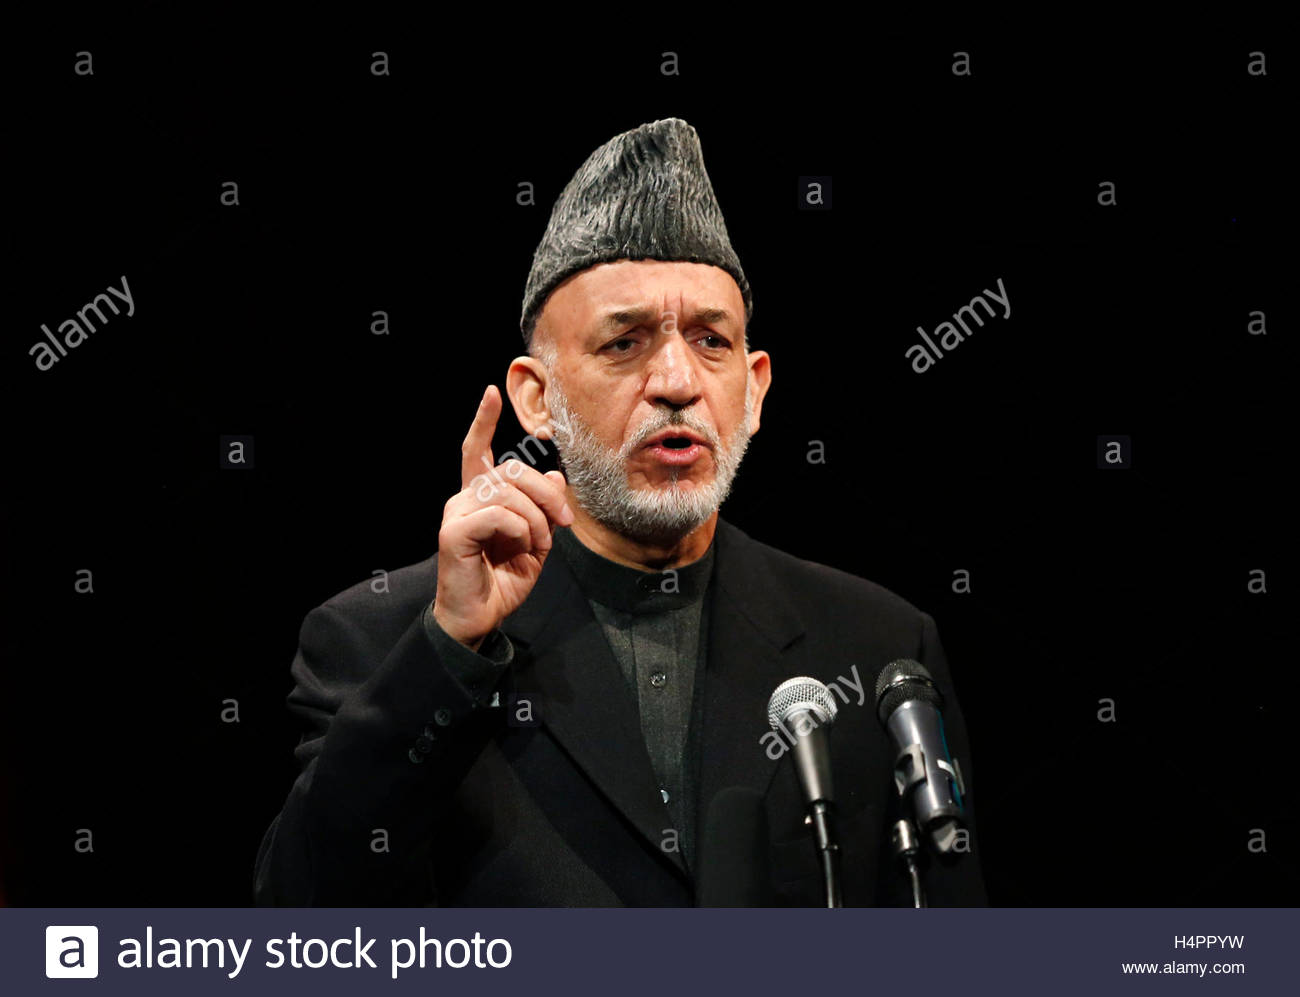 afghan president hamid karzai speaks during the opening of the established by the bayat foundation a charitable organization established and directed by entrepreneur ehsan